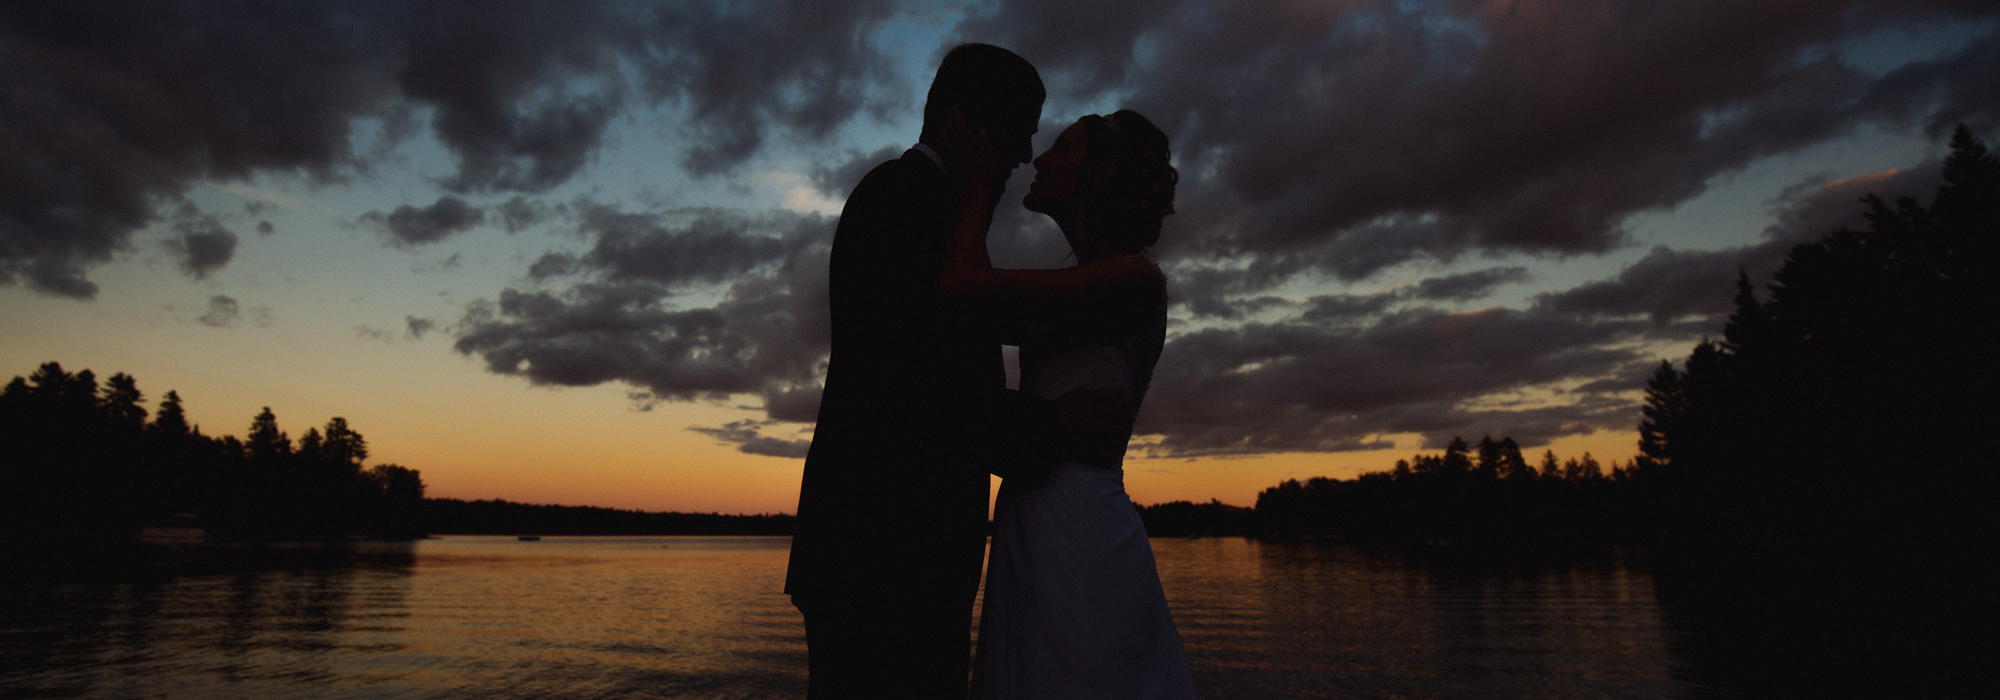 Silhouette Wedding Shot